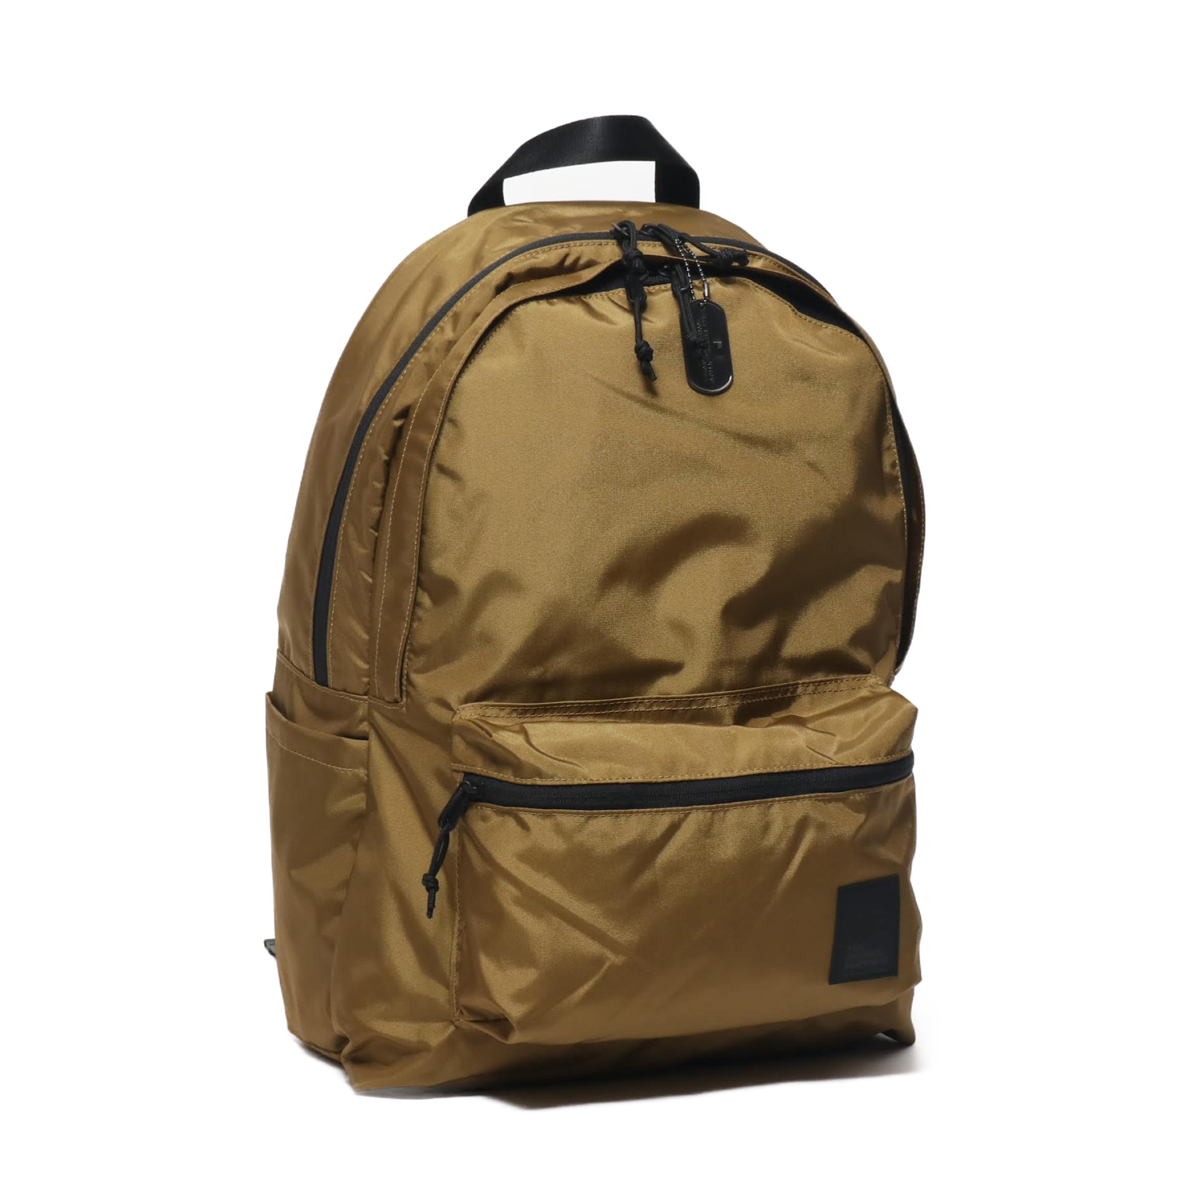 THE BROWN BUFFALO STANDARD ISSUE BACKPACK (ザブラウンバッファロー スタンダード イシュー バックパック)COYOTE【メンズ バックパック】19SP-I